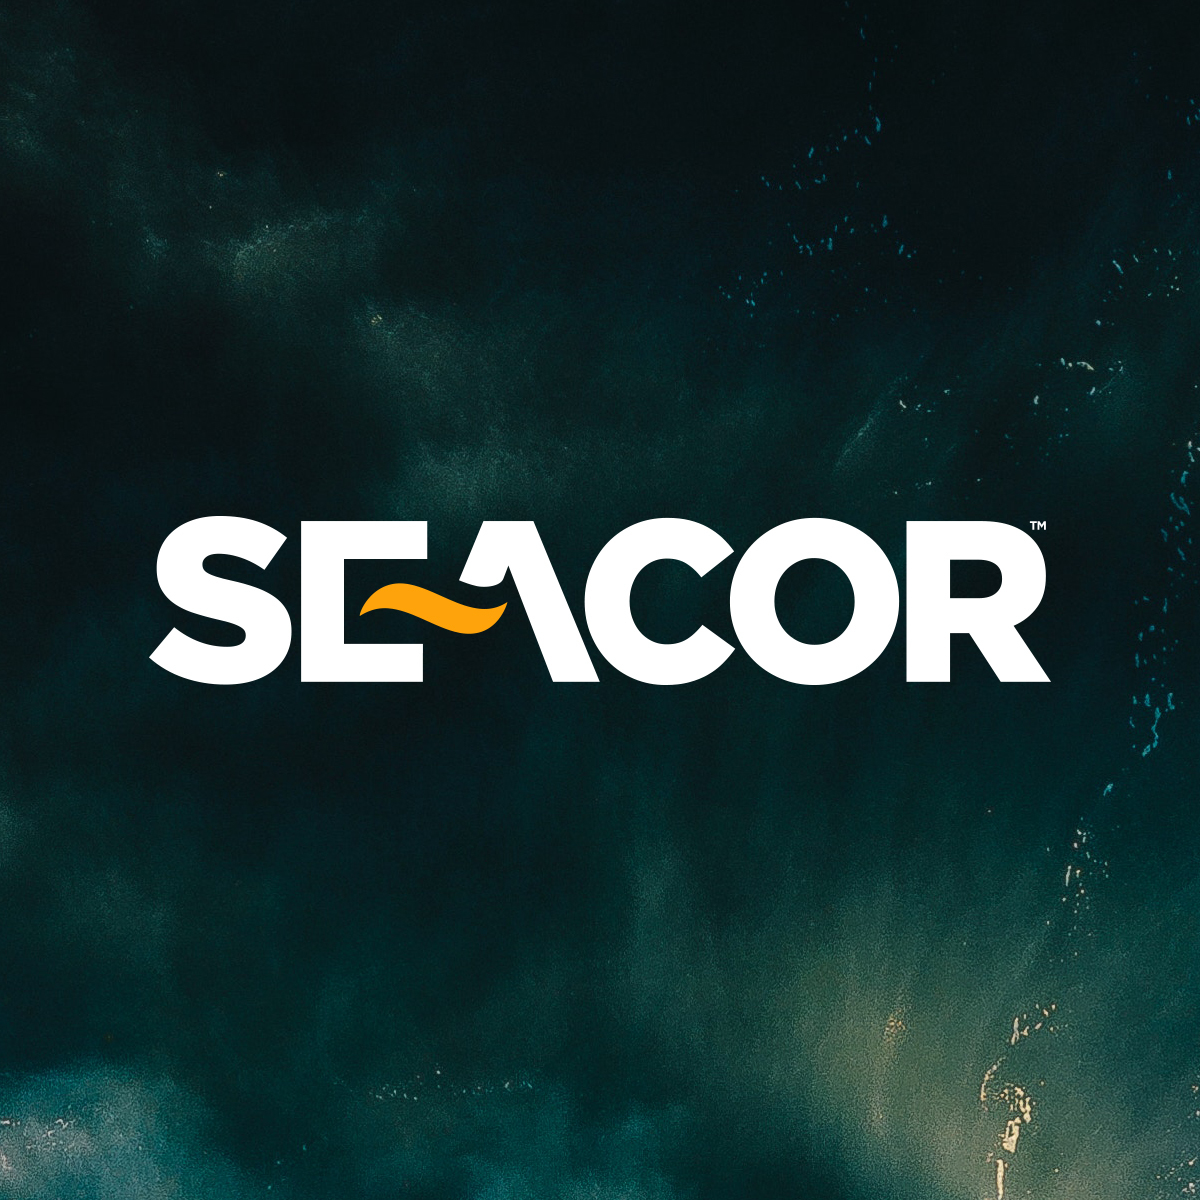 Seacor Case Study Image